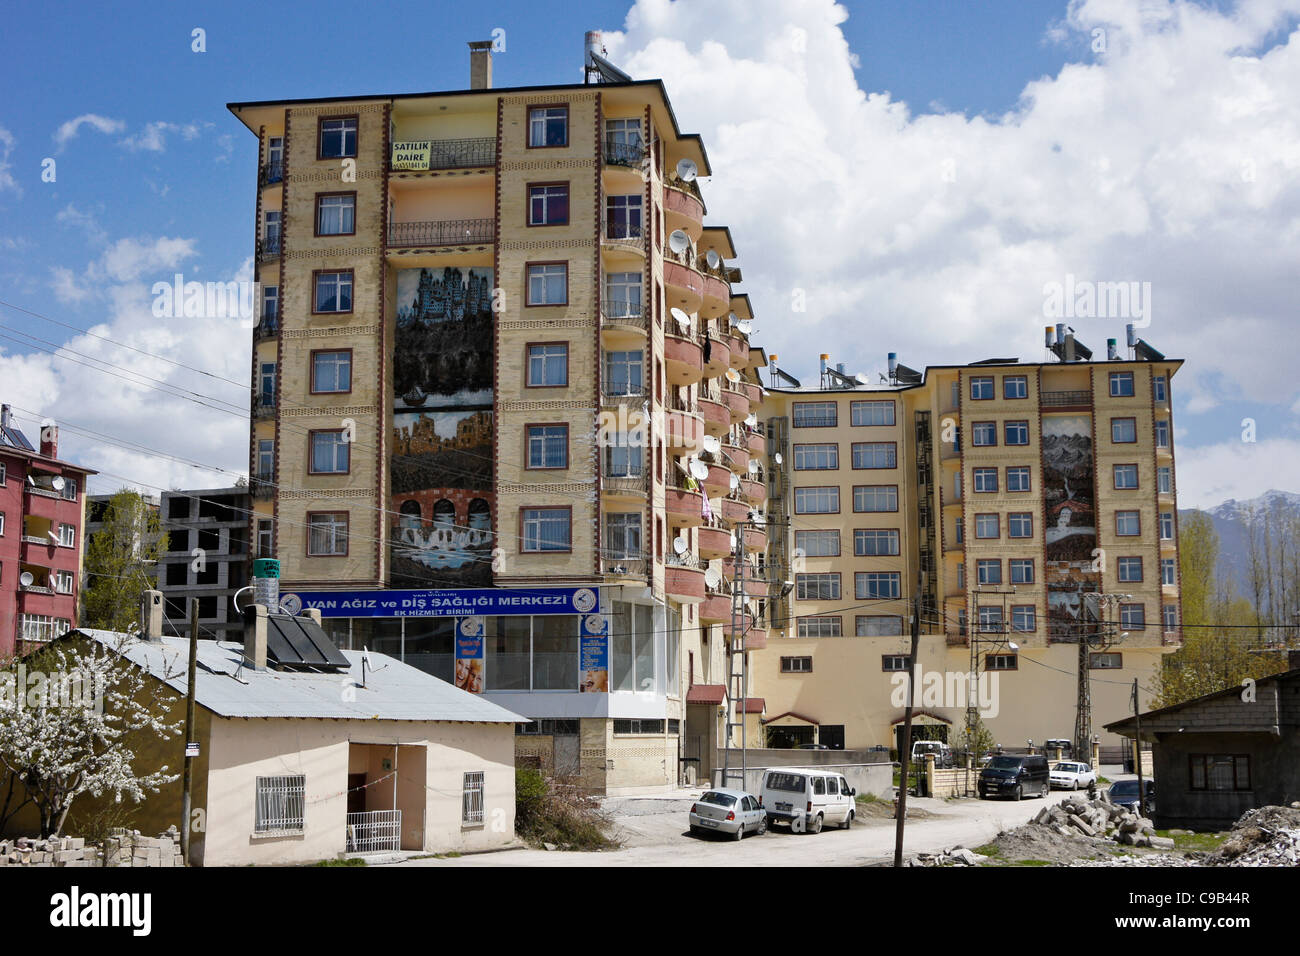 Apartment building with solar panels and water tanks on roof, Van, Eastern Anatolia, Turkey Stock Photo